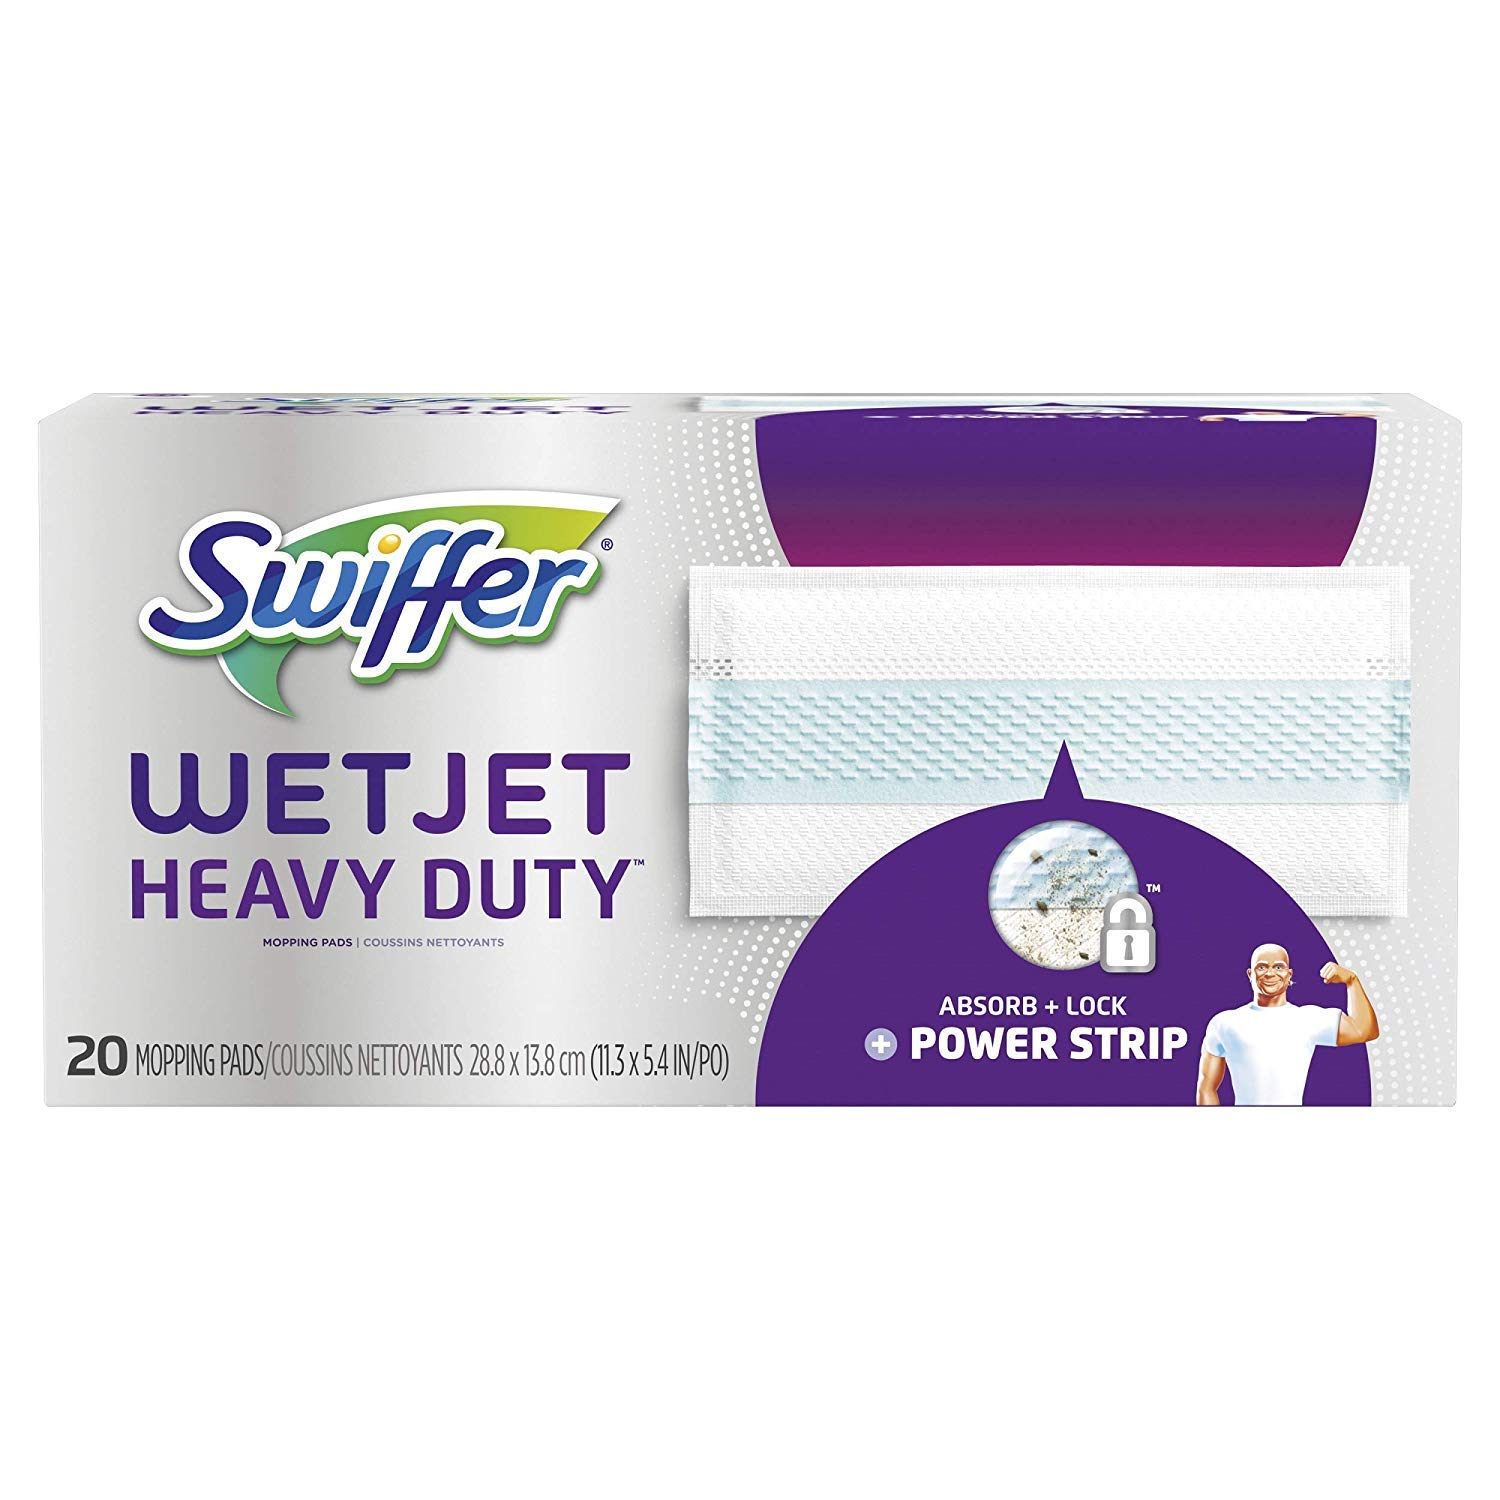 Wetjet Heavy Duty Extra Power Mop Pad Refills for Floor Mopping and Cleaning Pack of 20 (2 Pack